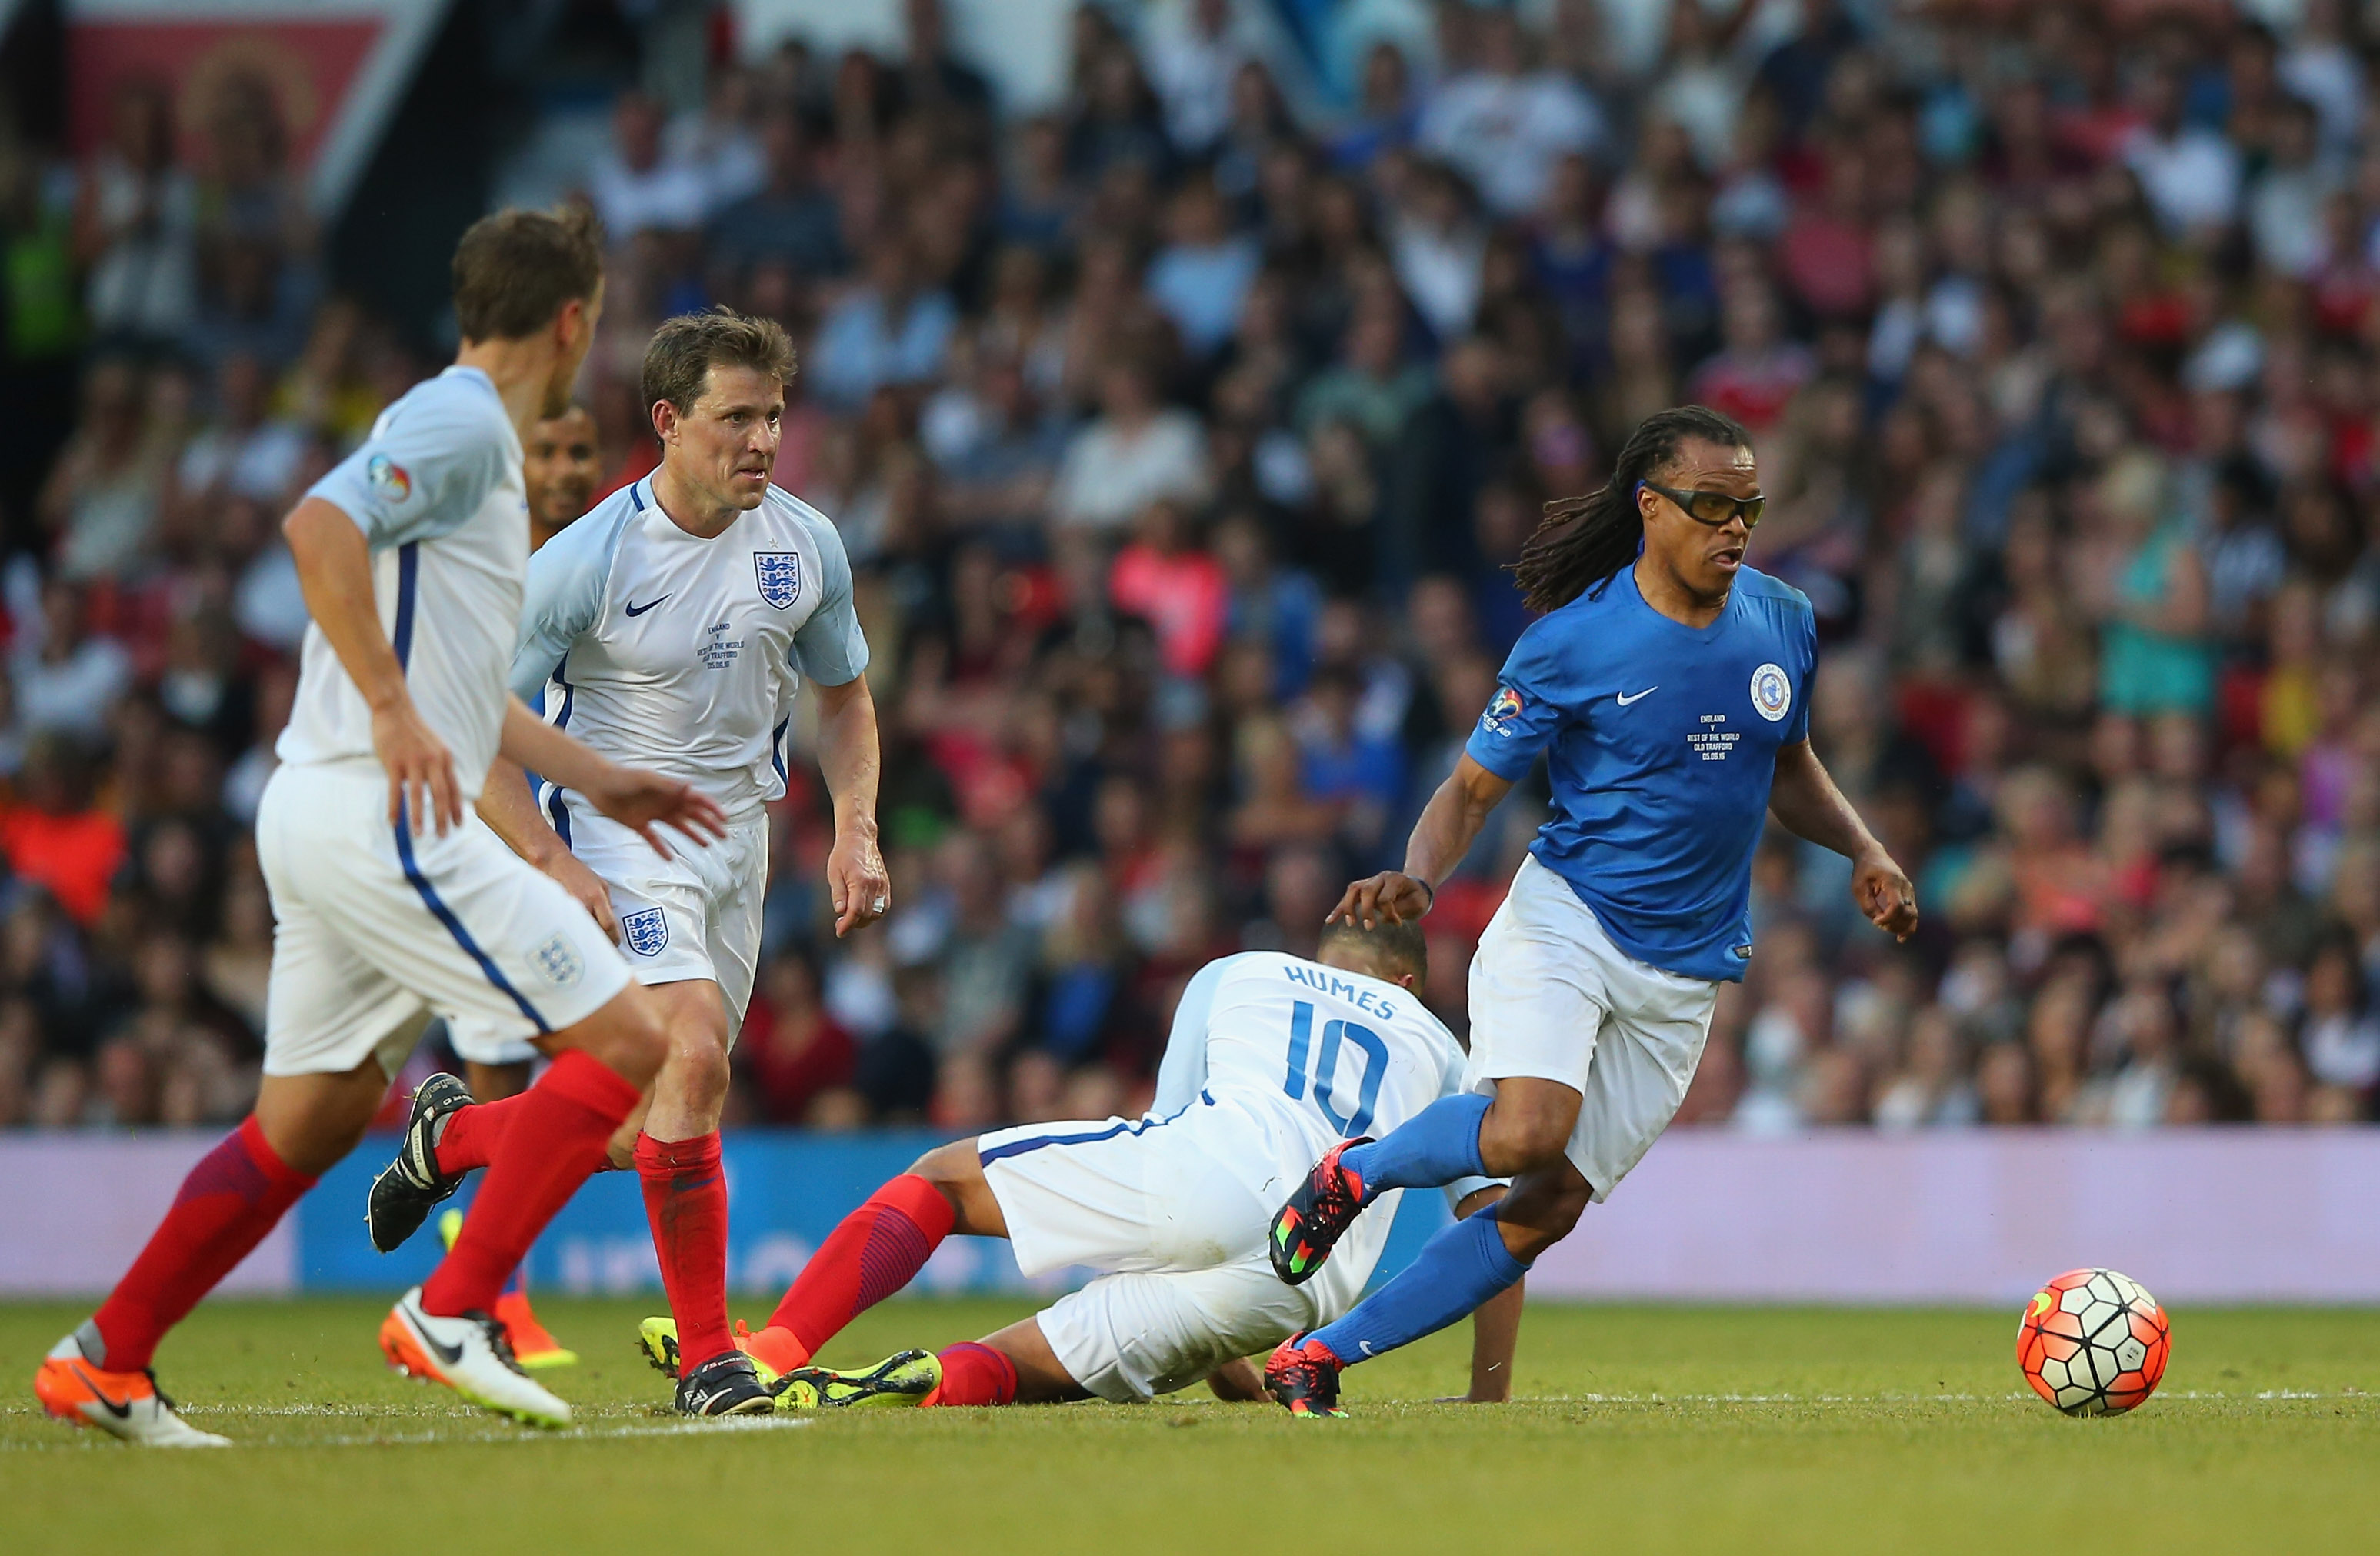 MANCHESTER, ENGLAND - JUNE 05:  Edgar Davids of Rest of the World beats Marvin Humes of England during the Soccer Aid 2016 match in aid of UNICEF at Old Trafford on June 5, 2016 in Manchester, England.  (Photo by Alex Livesey/Getty Images)